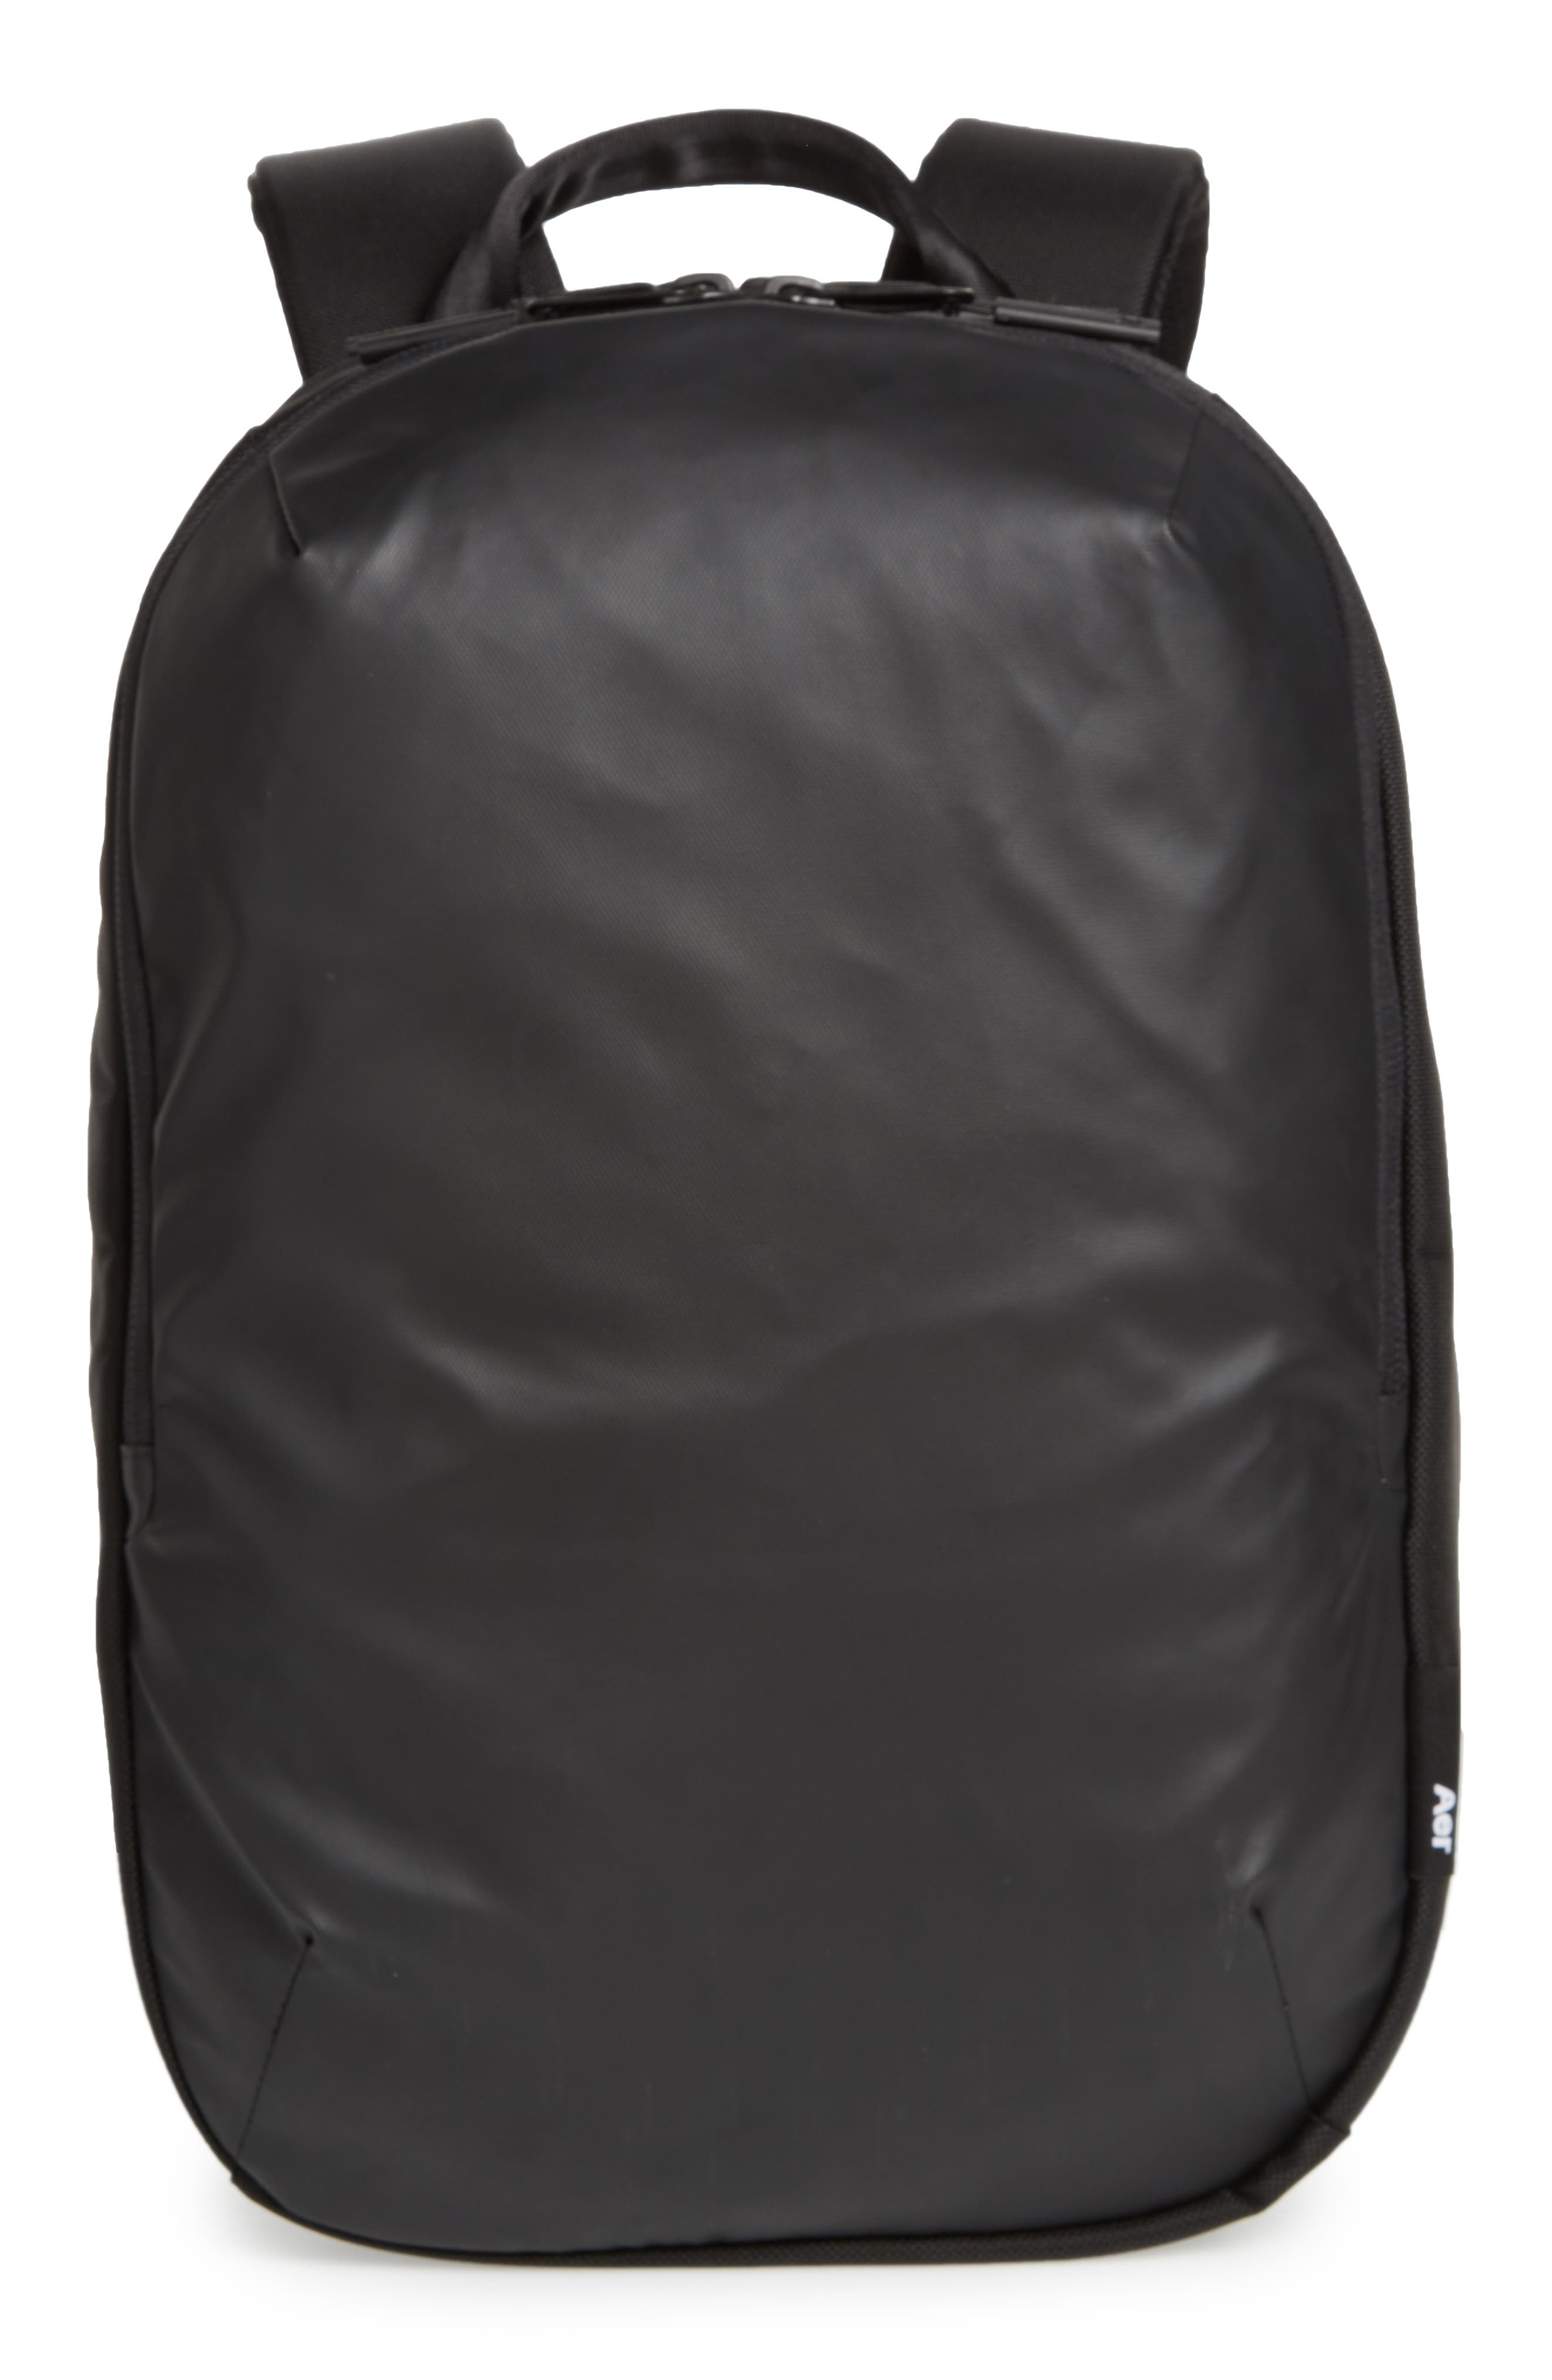 Work Day Backpack,                             Main thumbnail 1, color,                             Black